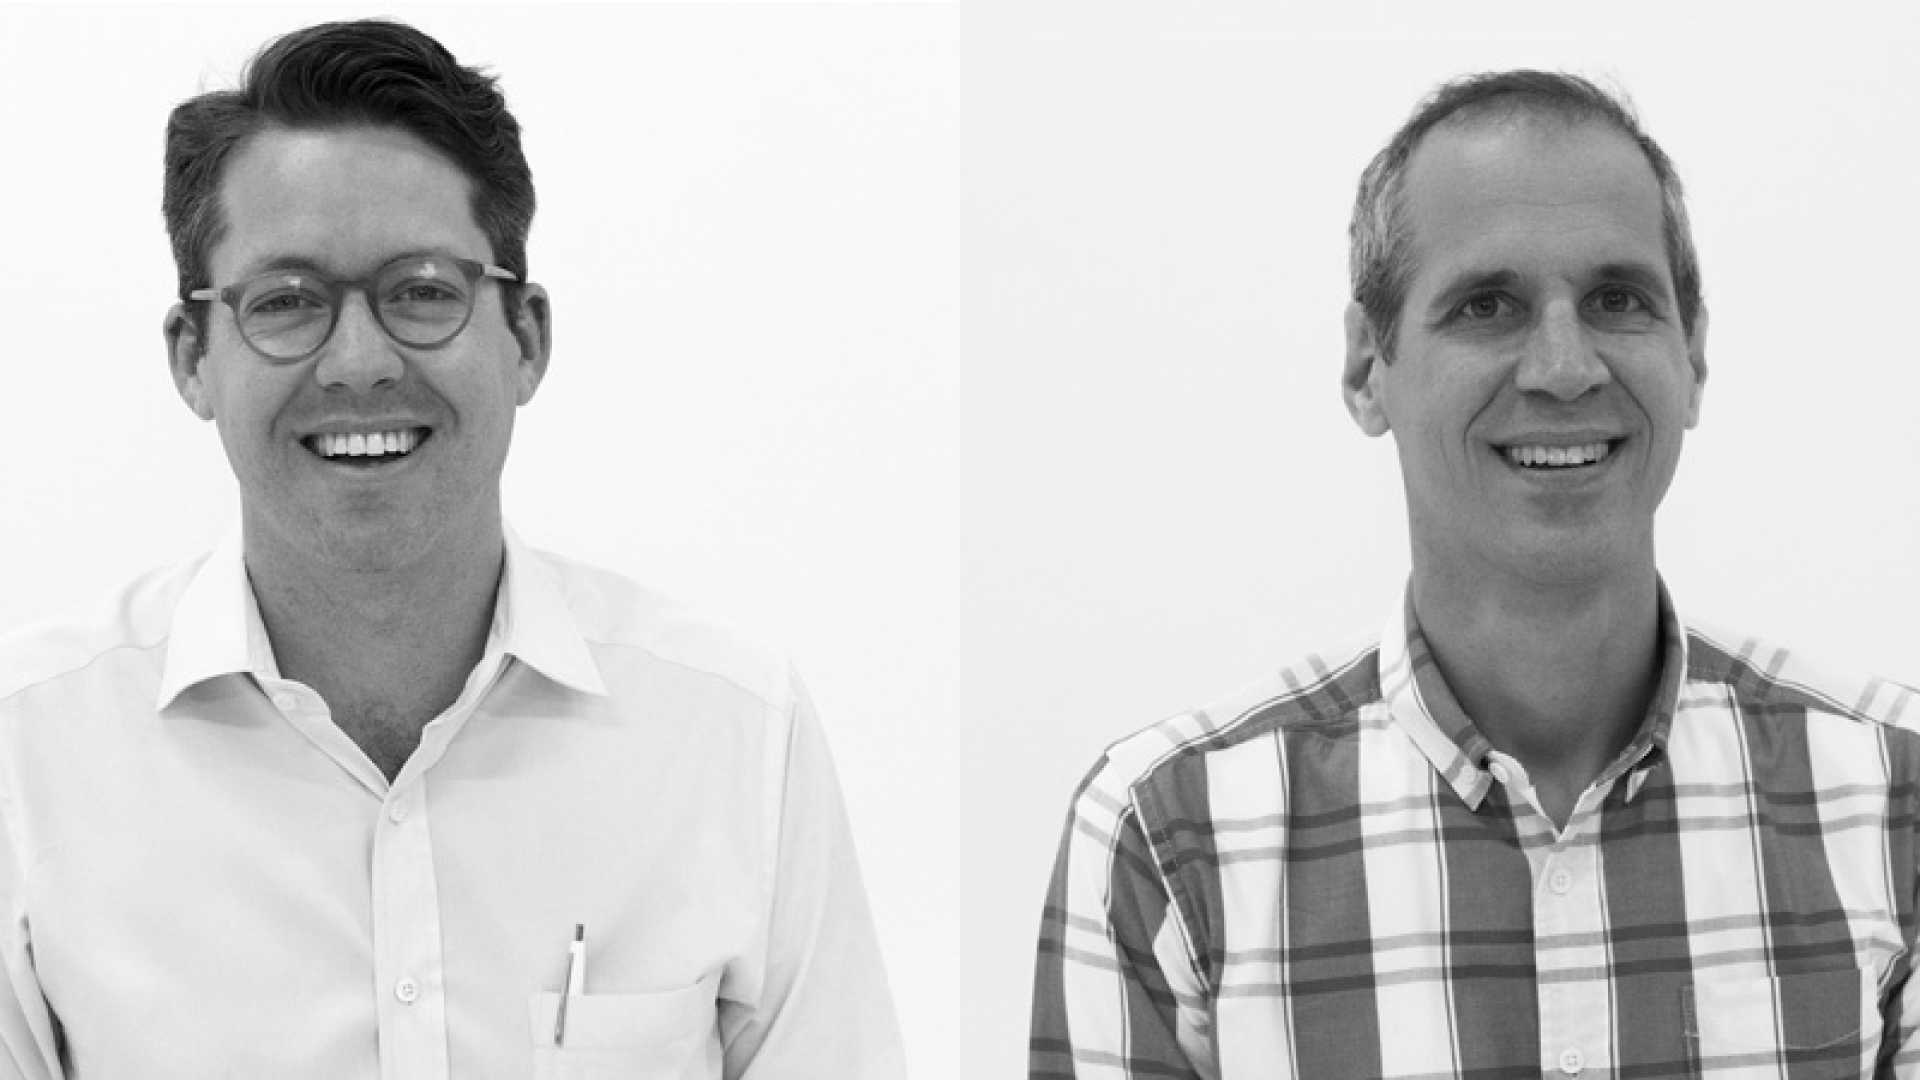 Matthew Lieber and Alex Blumberg of Gimlet Media, a network of podcasts launched in Brooklyn, New York.